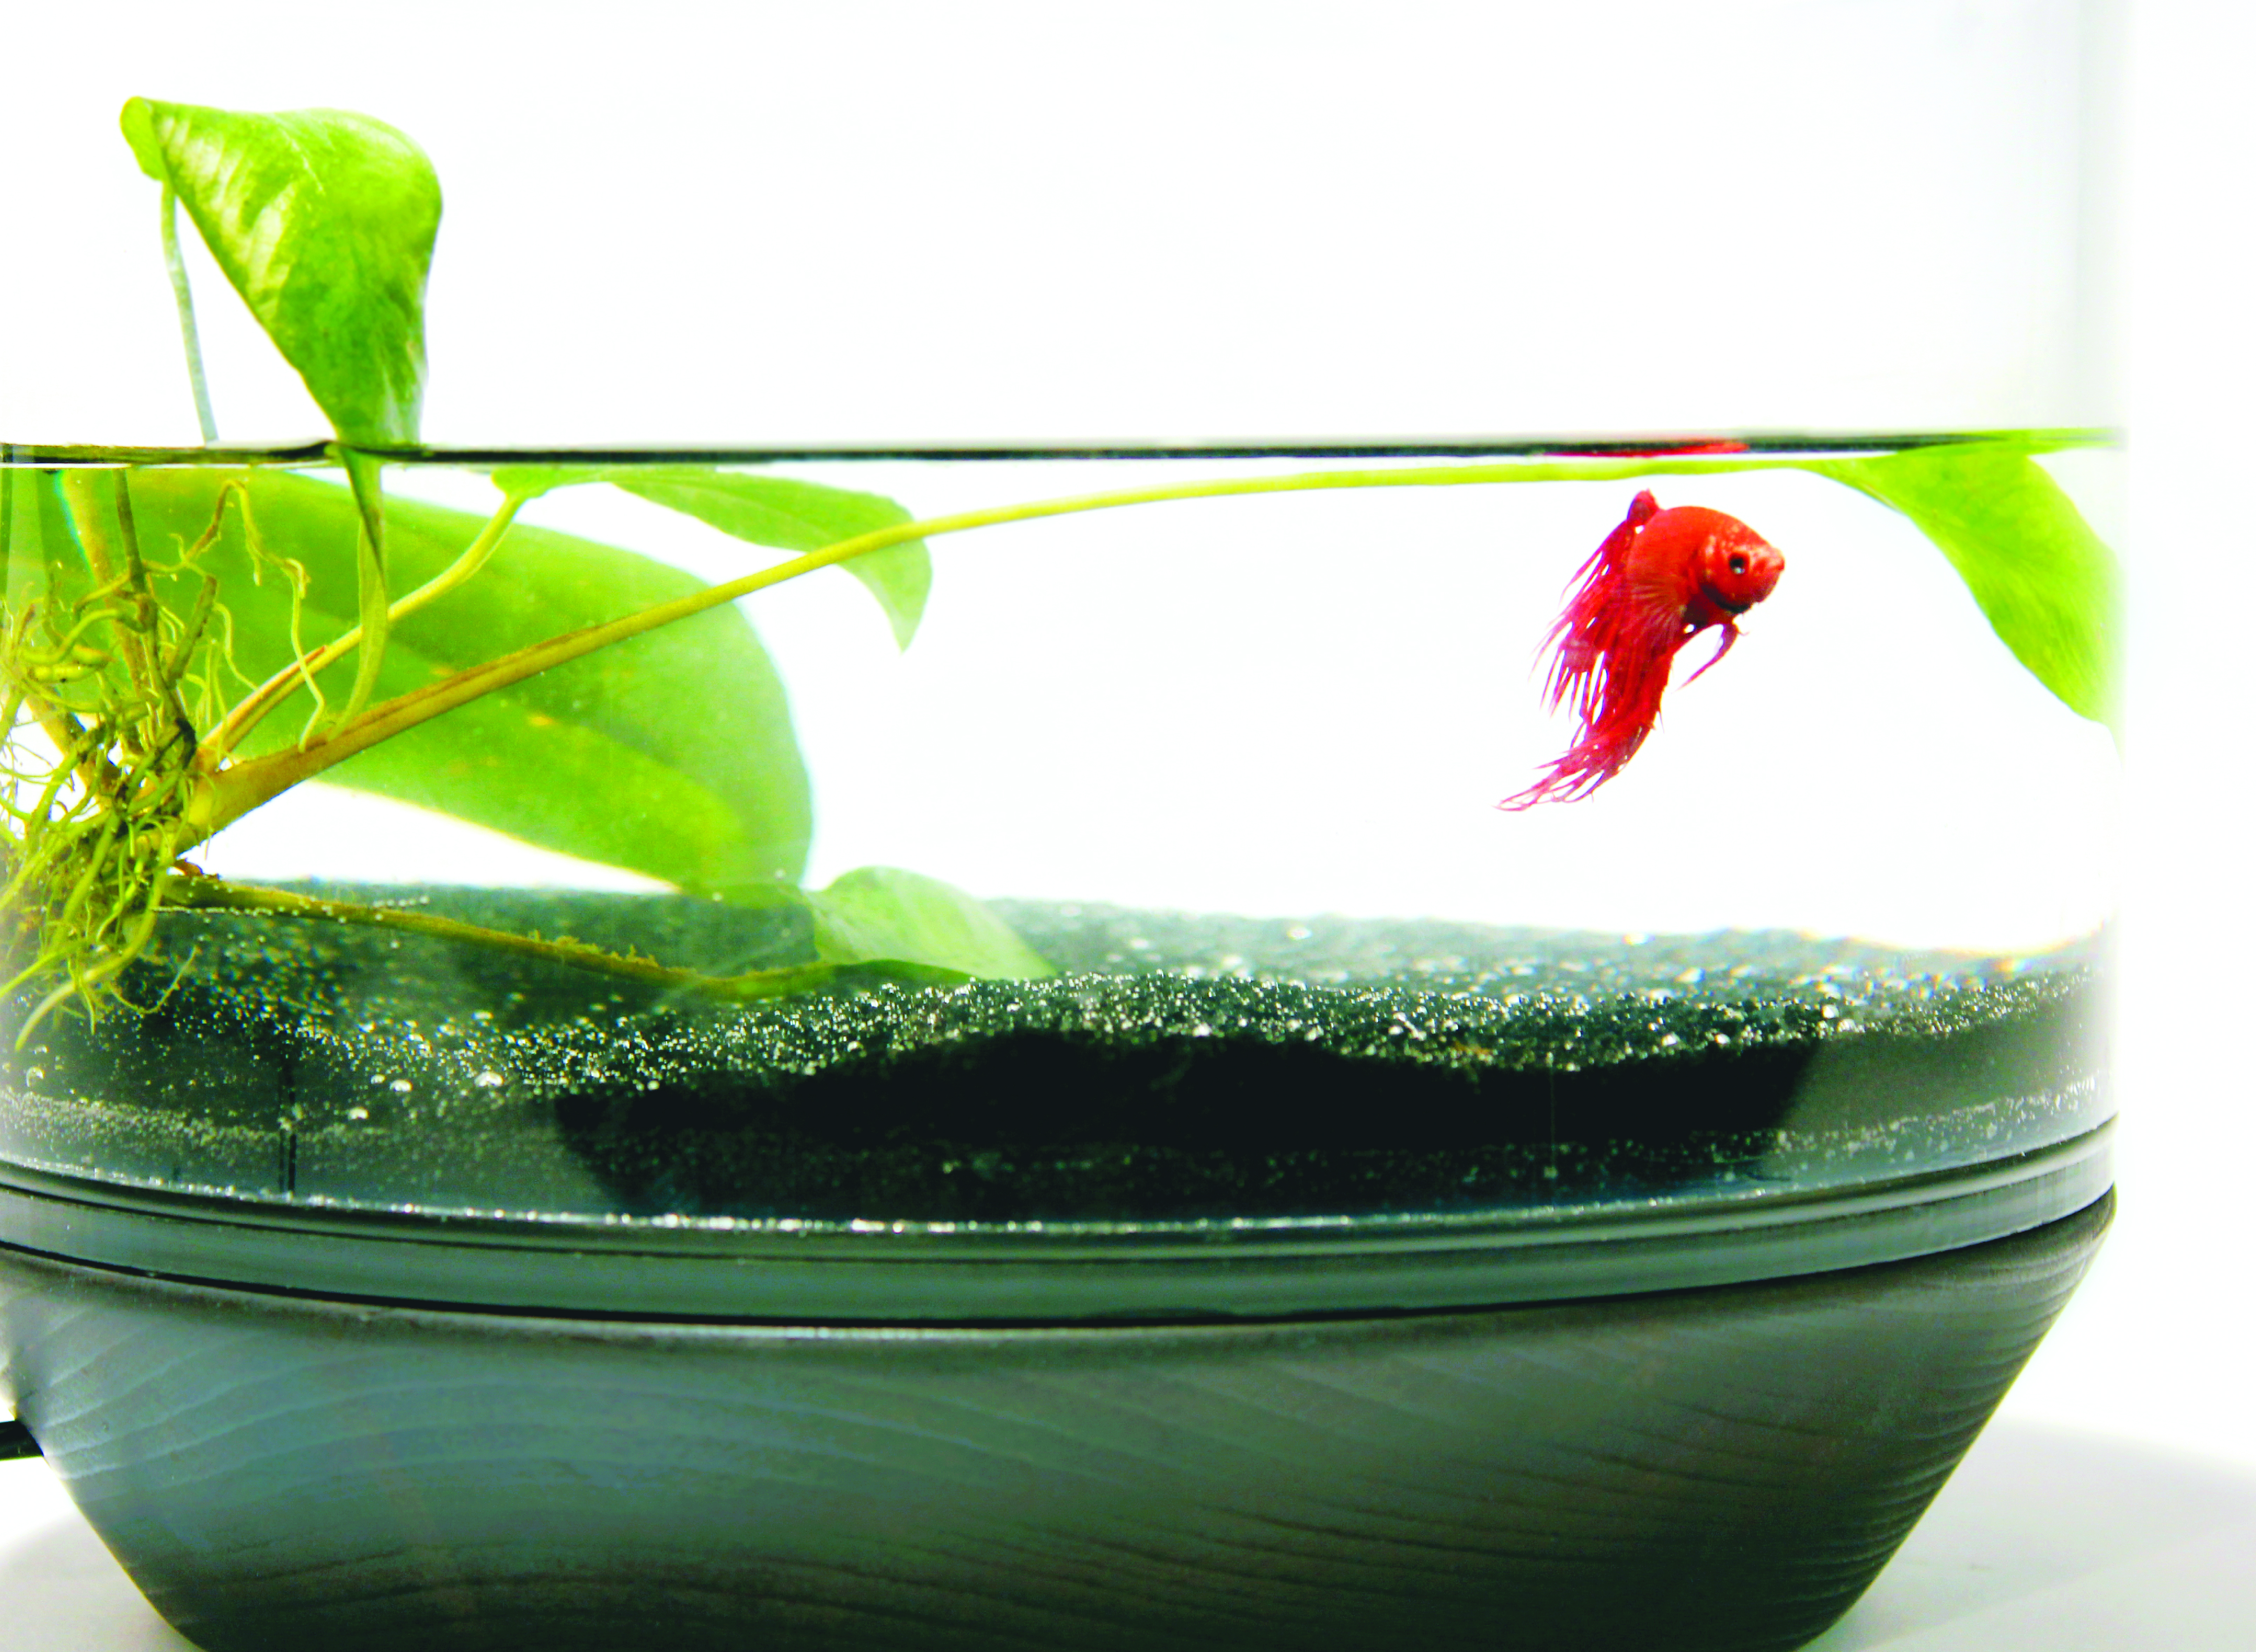 Watch a Fish Drive Its Own Motorized Bowl